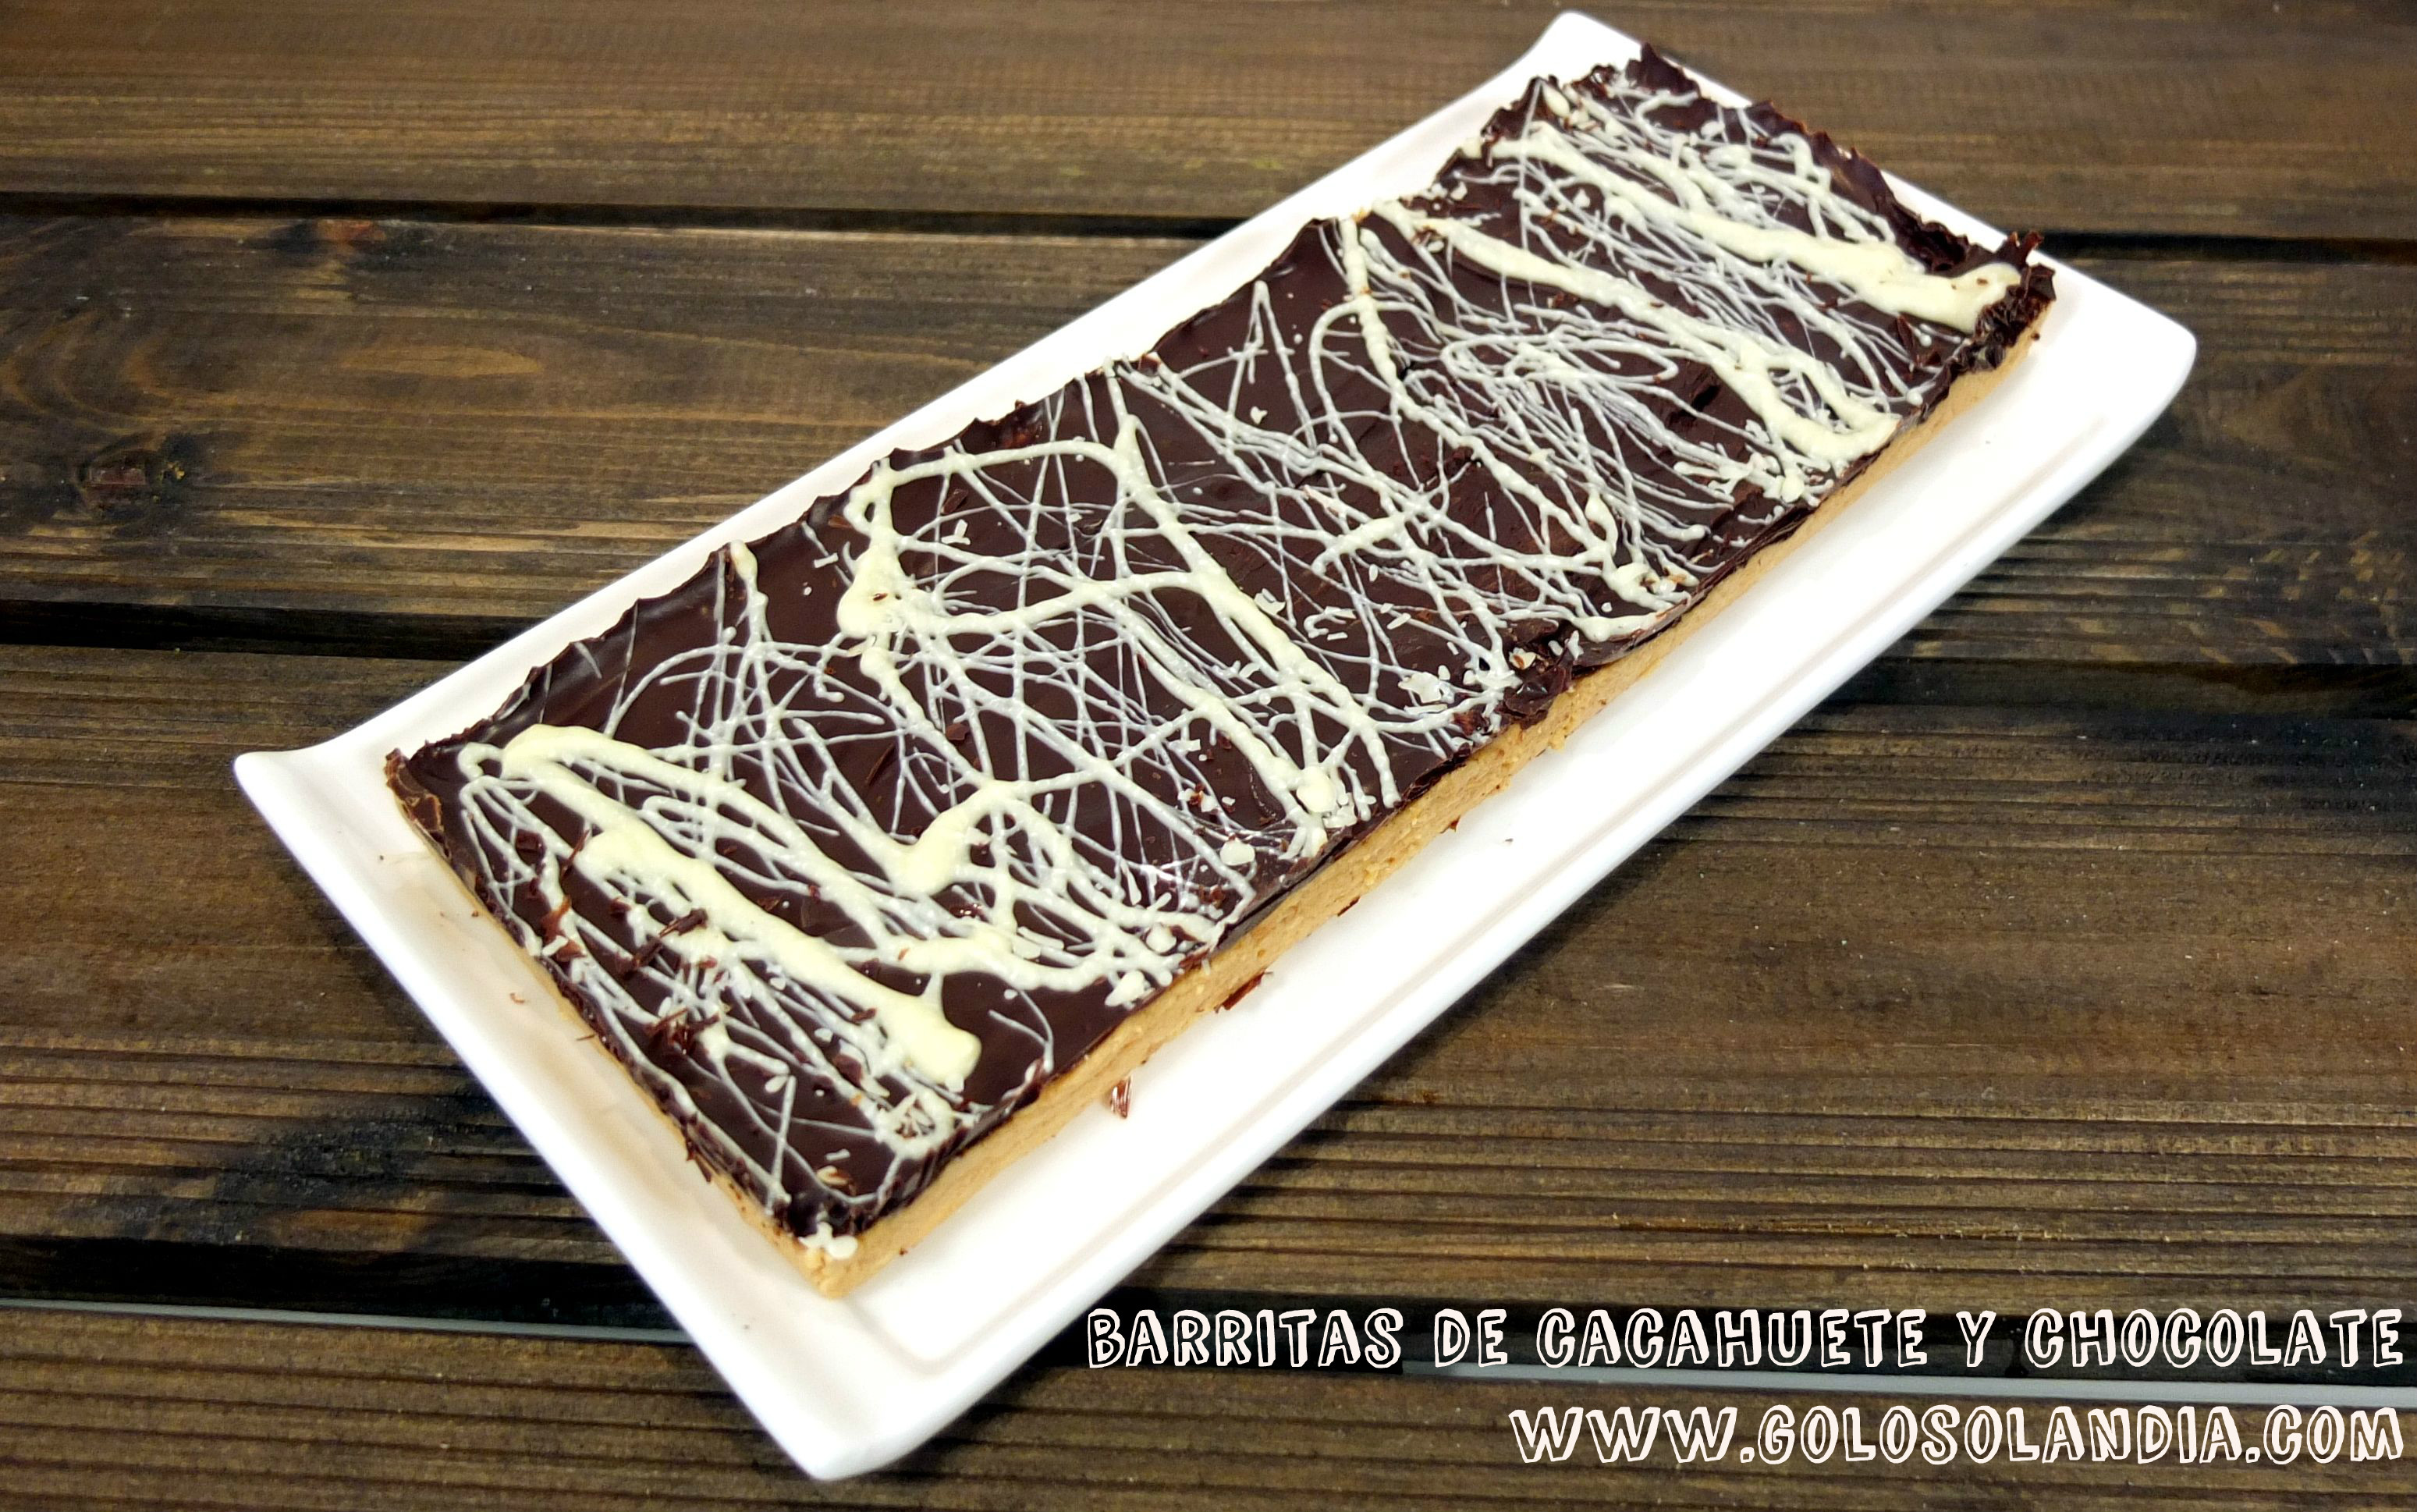 Barritas de cacahuete y chocolate